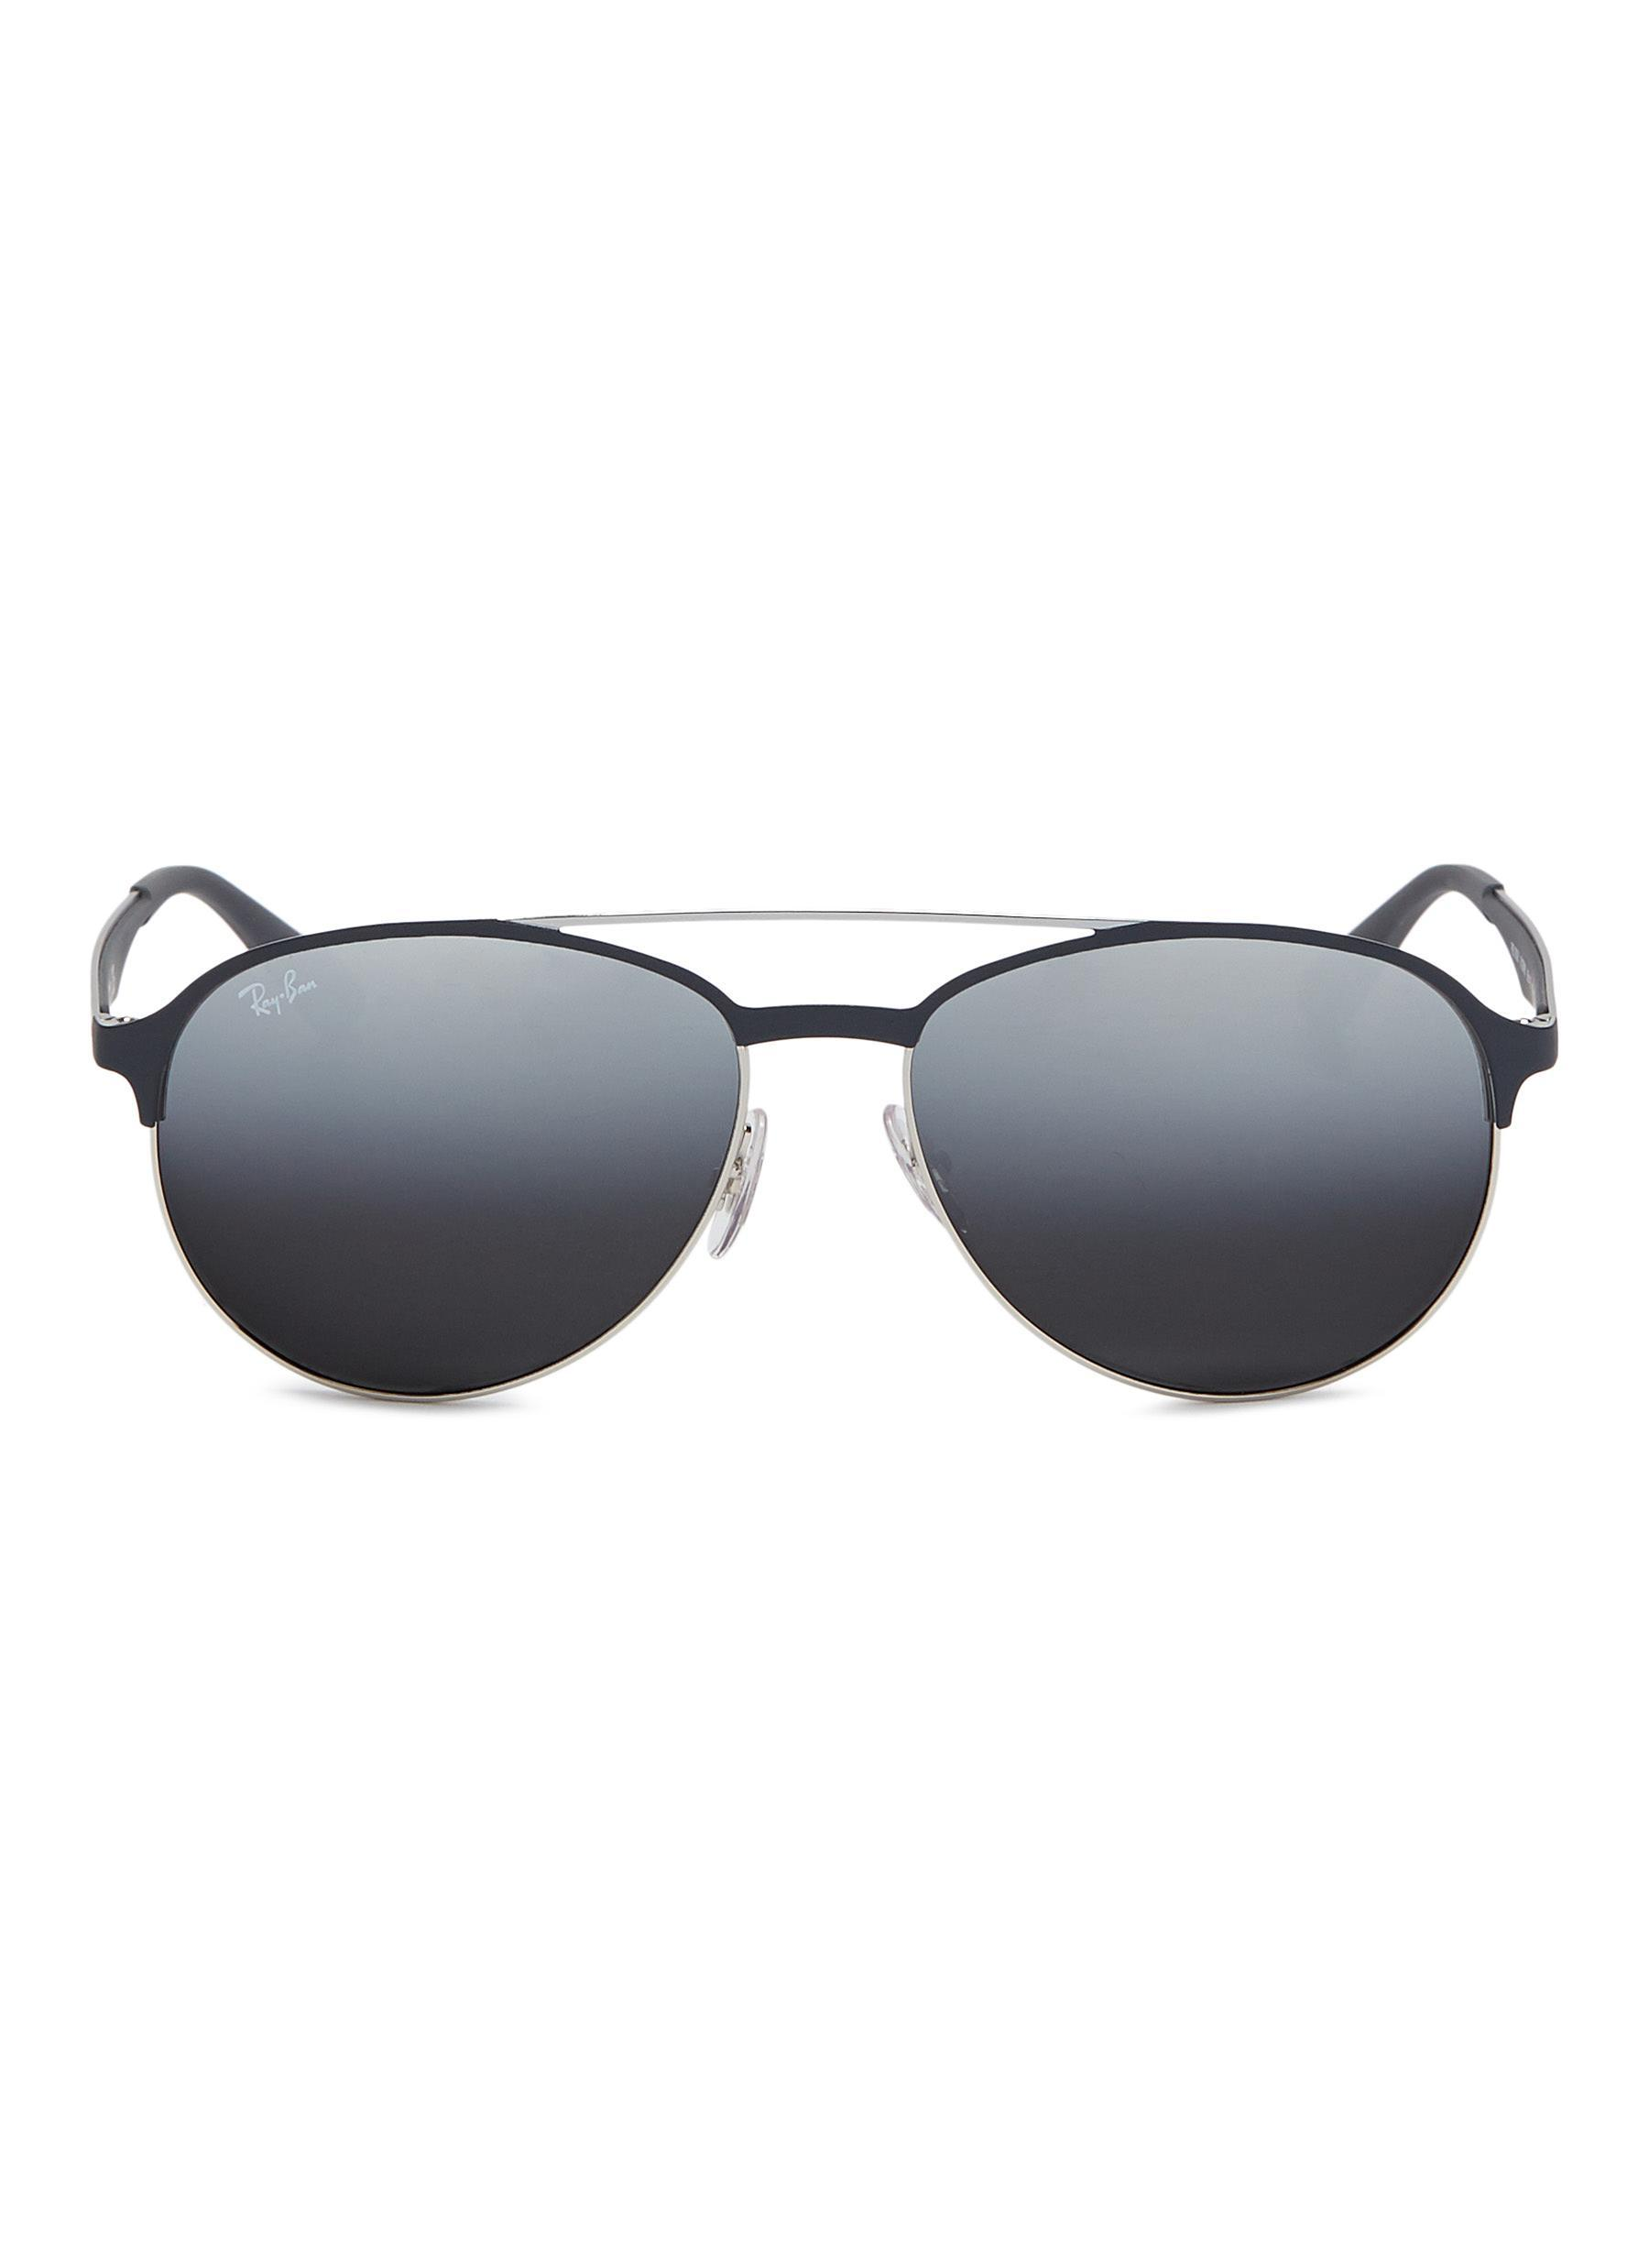 66311ae0f6 ... coupon code for lyst ray ban rb3606 mirror metal aviator sunglasses in  gray for men 79a19